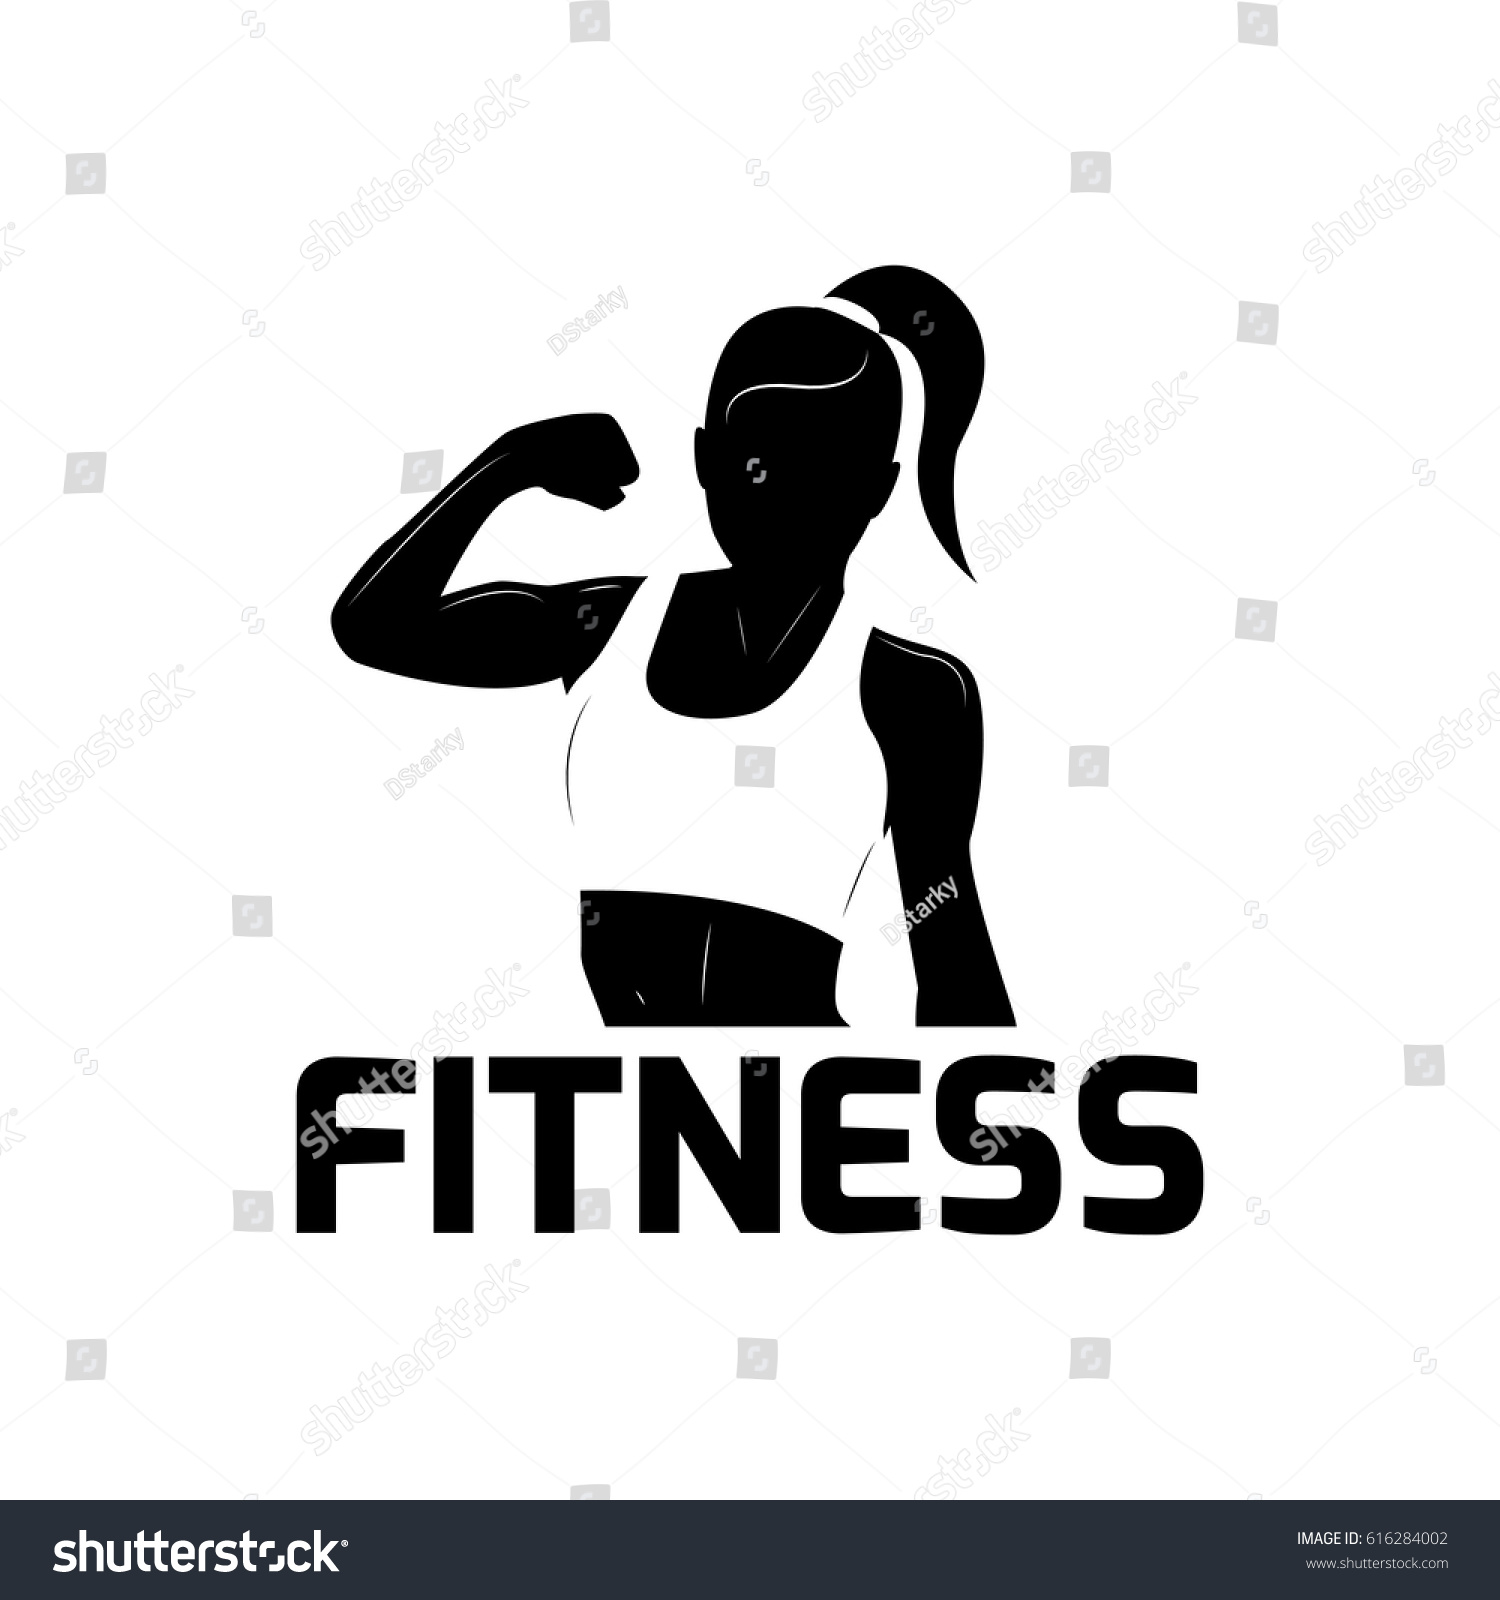 Fitness Woman Silhouette Modern Line Elements Stock Vector Royalty Free 616284002 Fitness women women fitness fashion shopping woman female people shopping bags symbol template day decoration clothing figure makeup pattern men flowers background march men and women. https www shutterstock com image vector fitness woman silhouette modern line elements 616284002